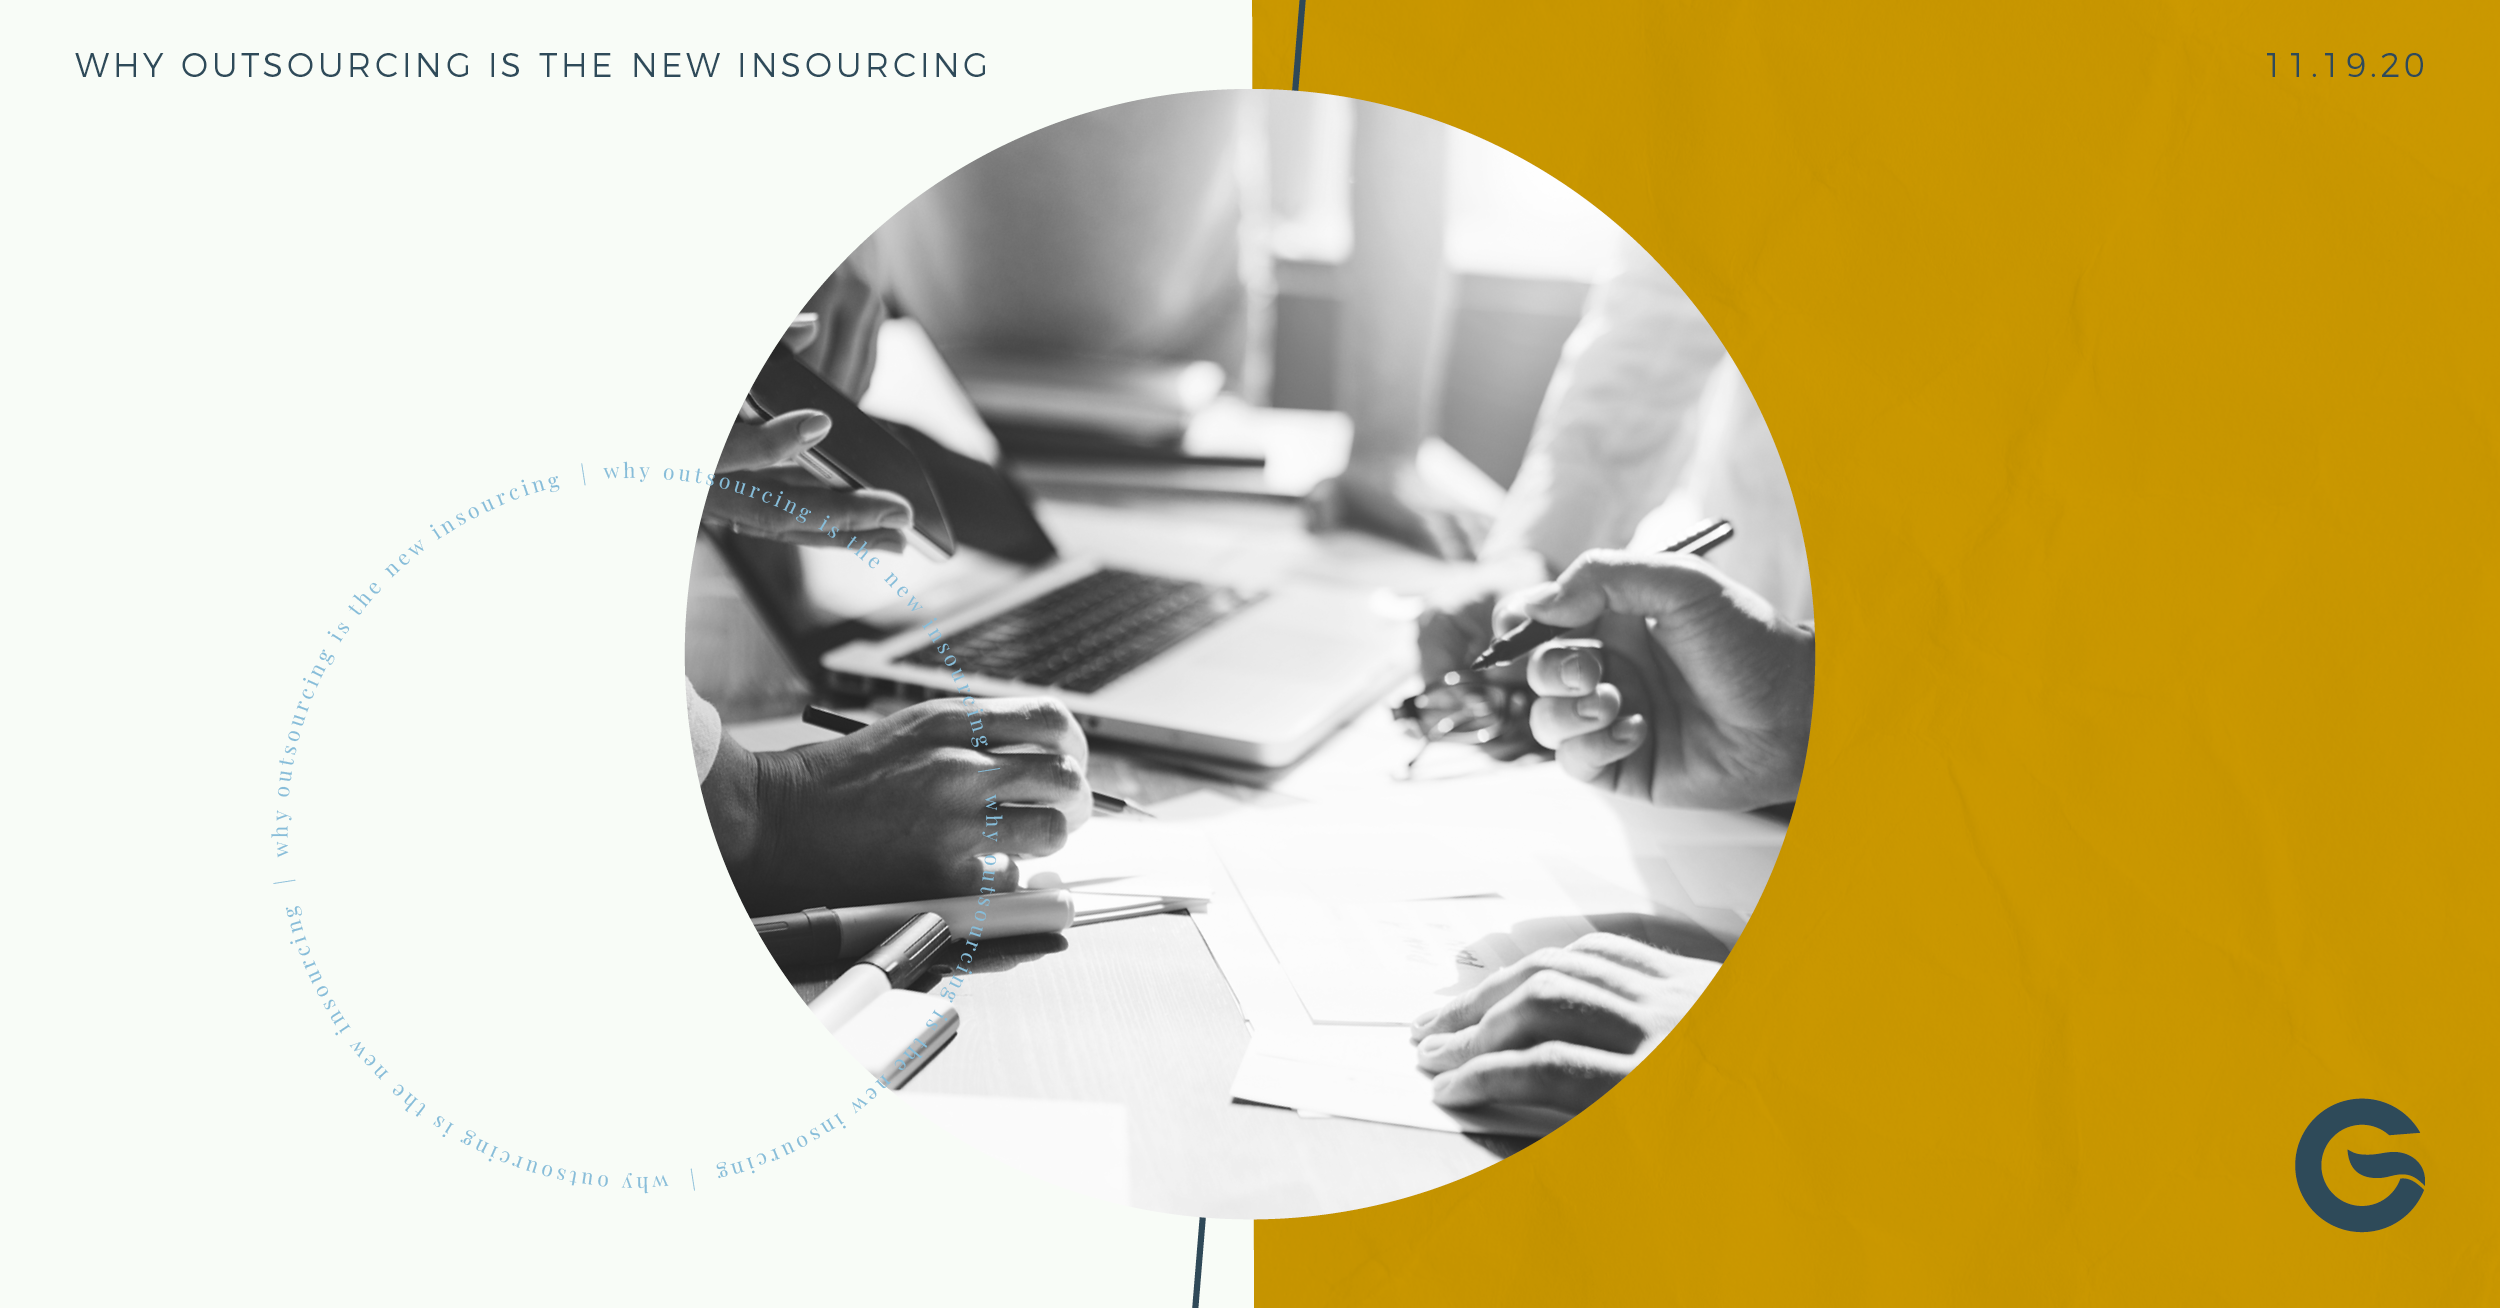 Why Outsourcing is the New Insourcing